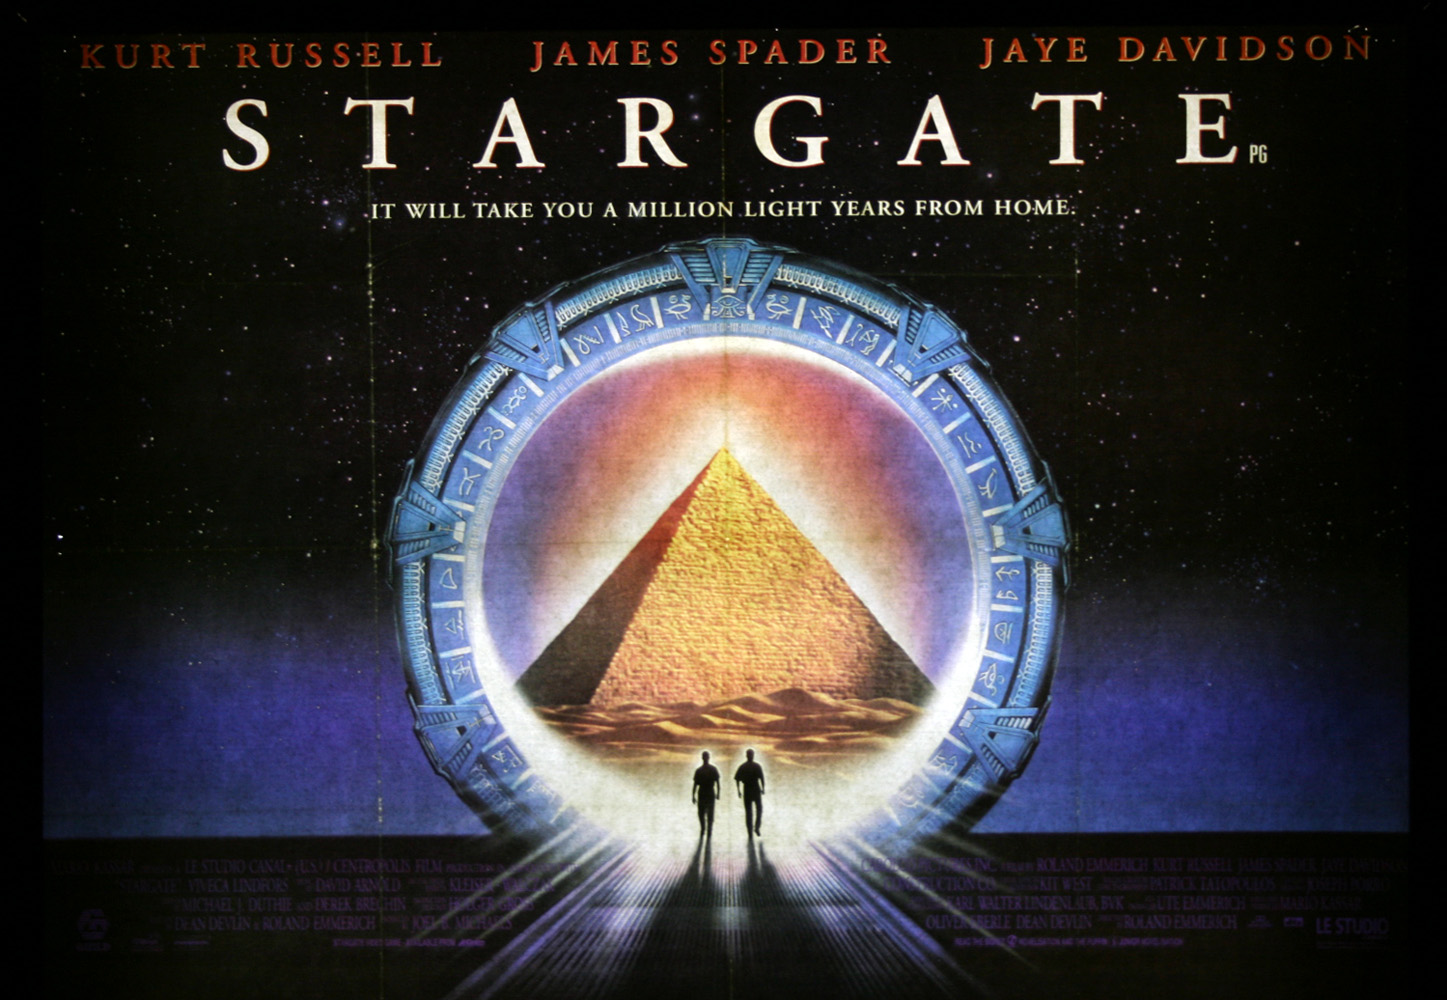 http://2.bp.blogspot.com/-orjU3LFfAyY/T5so-mF4iyI/AAAAAAAAB_s/XxKSfQiSmx0/s1600/stargate_movie.jpg